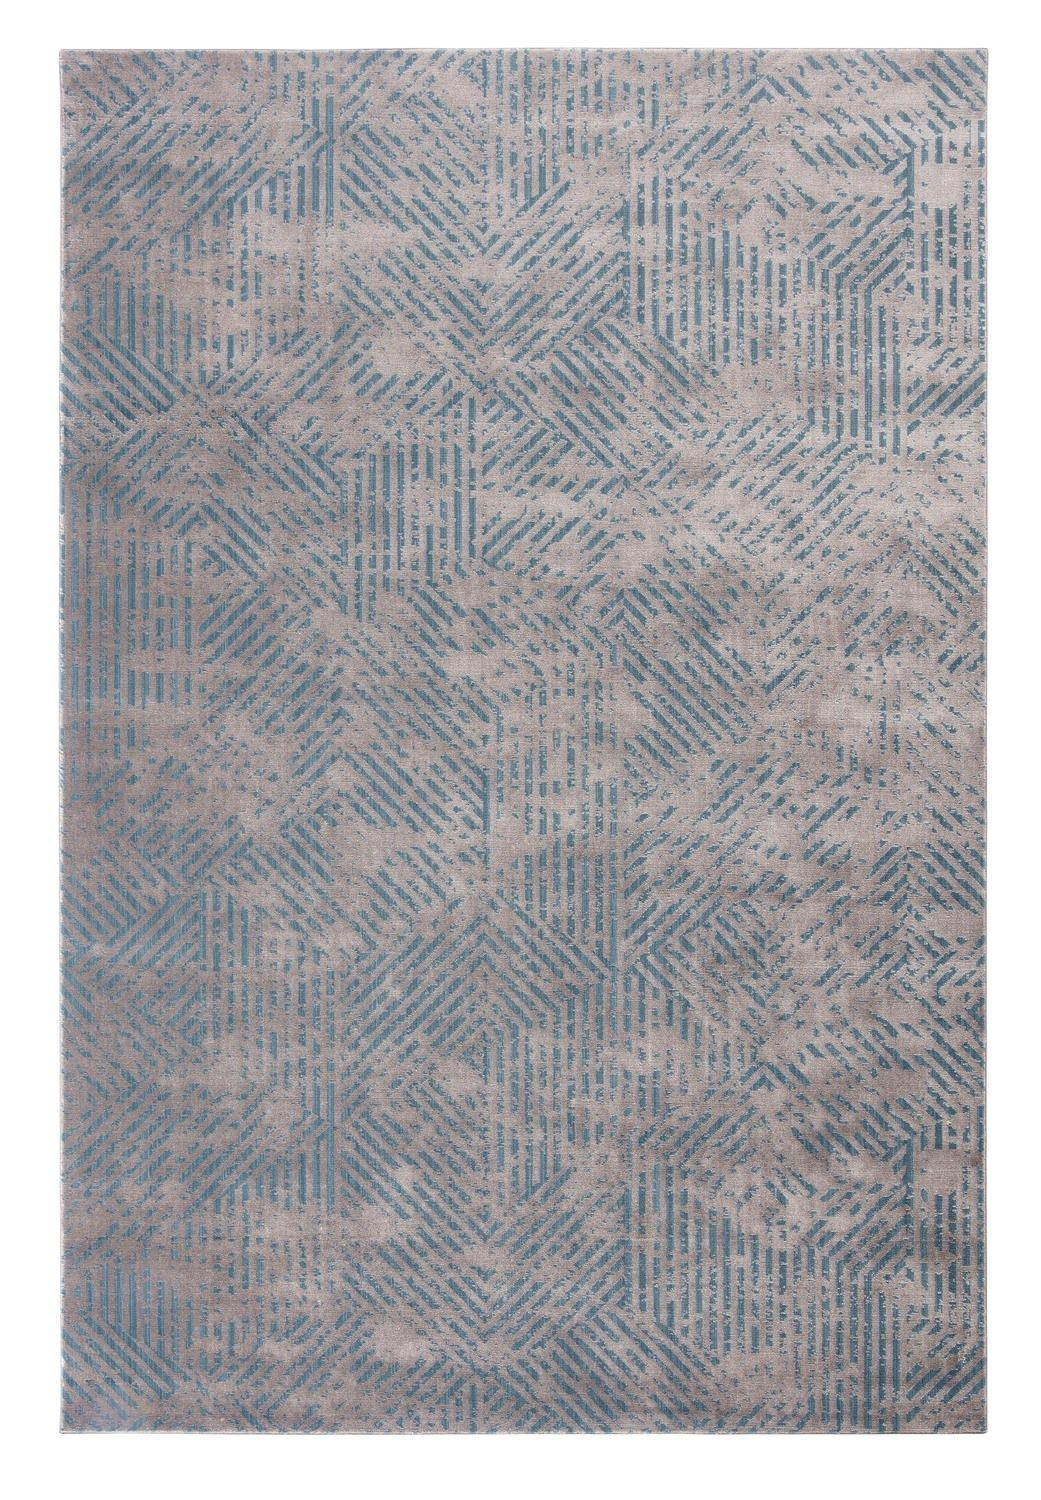 Handmade Rectangular Striped Fabric Rug Swing By Limited Edition